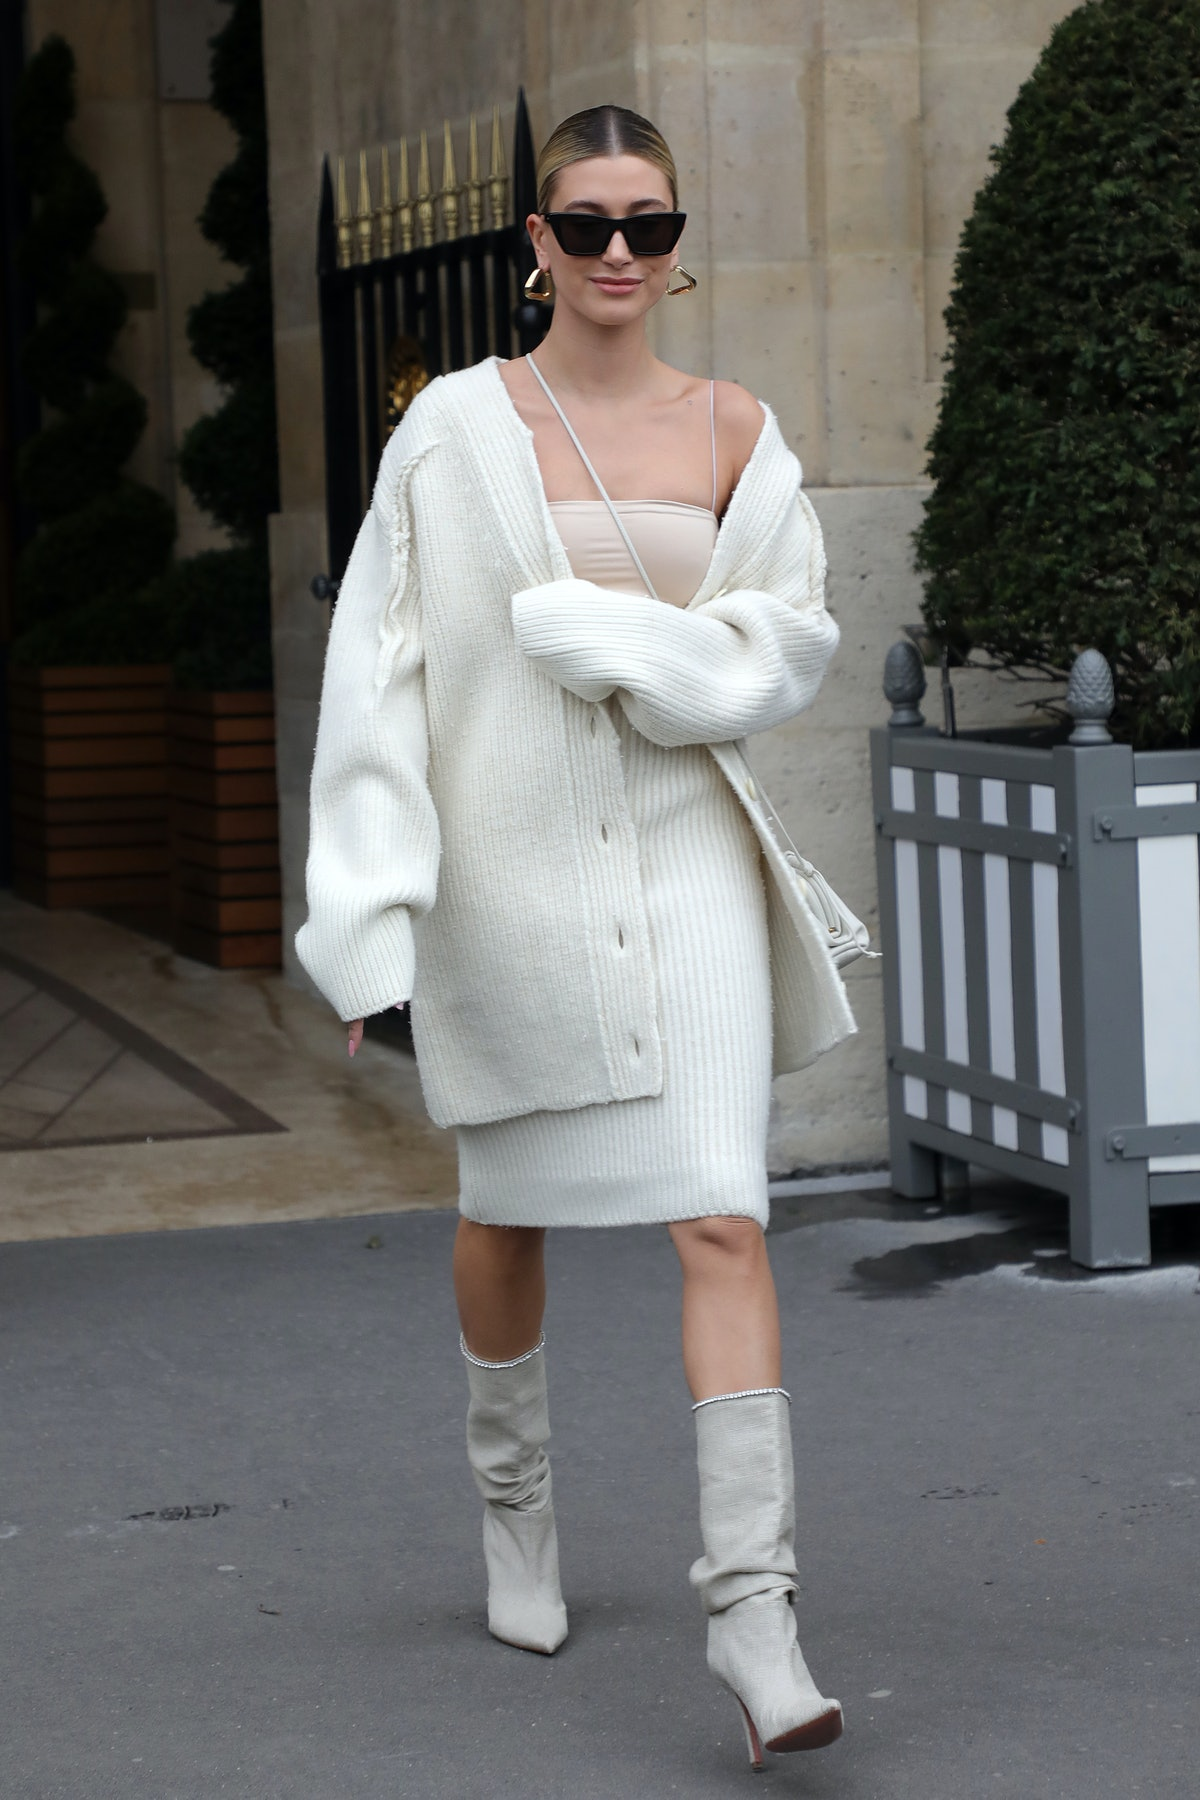 Hailey Bieber is seen leaving the Crillon hotel in Paris, France in February 2020.